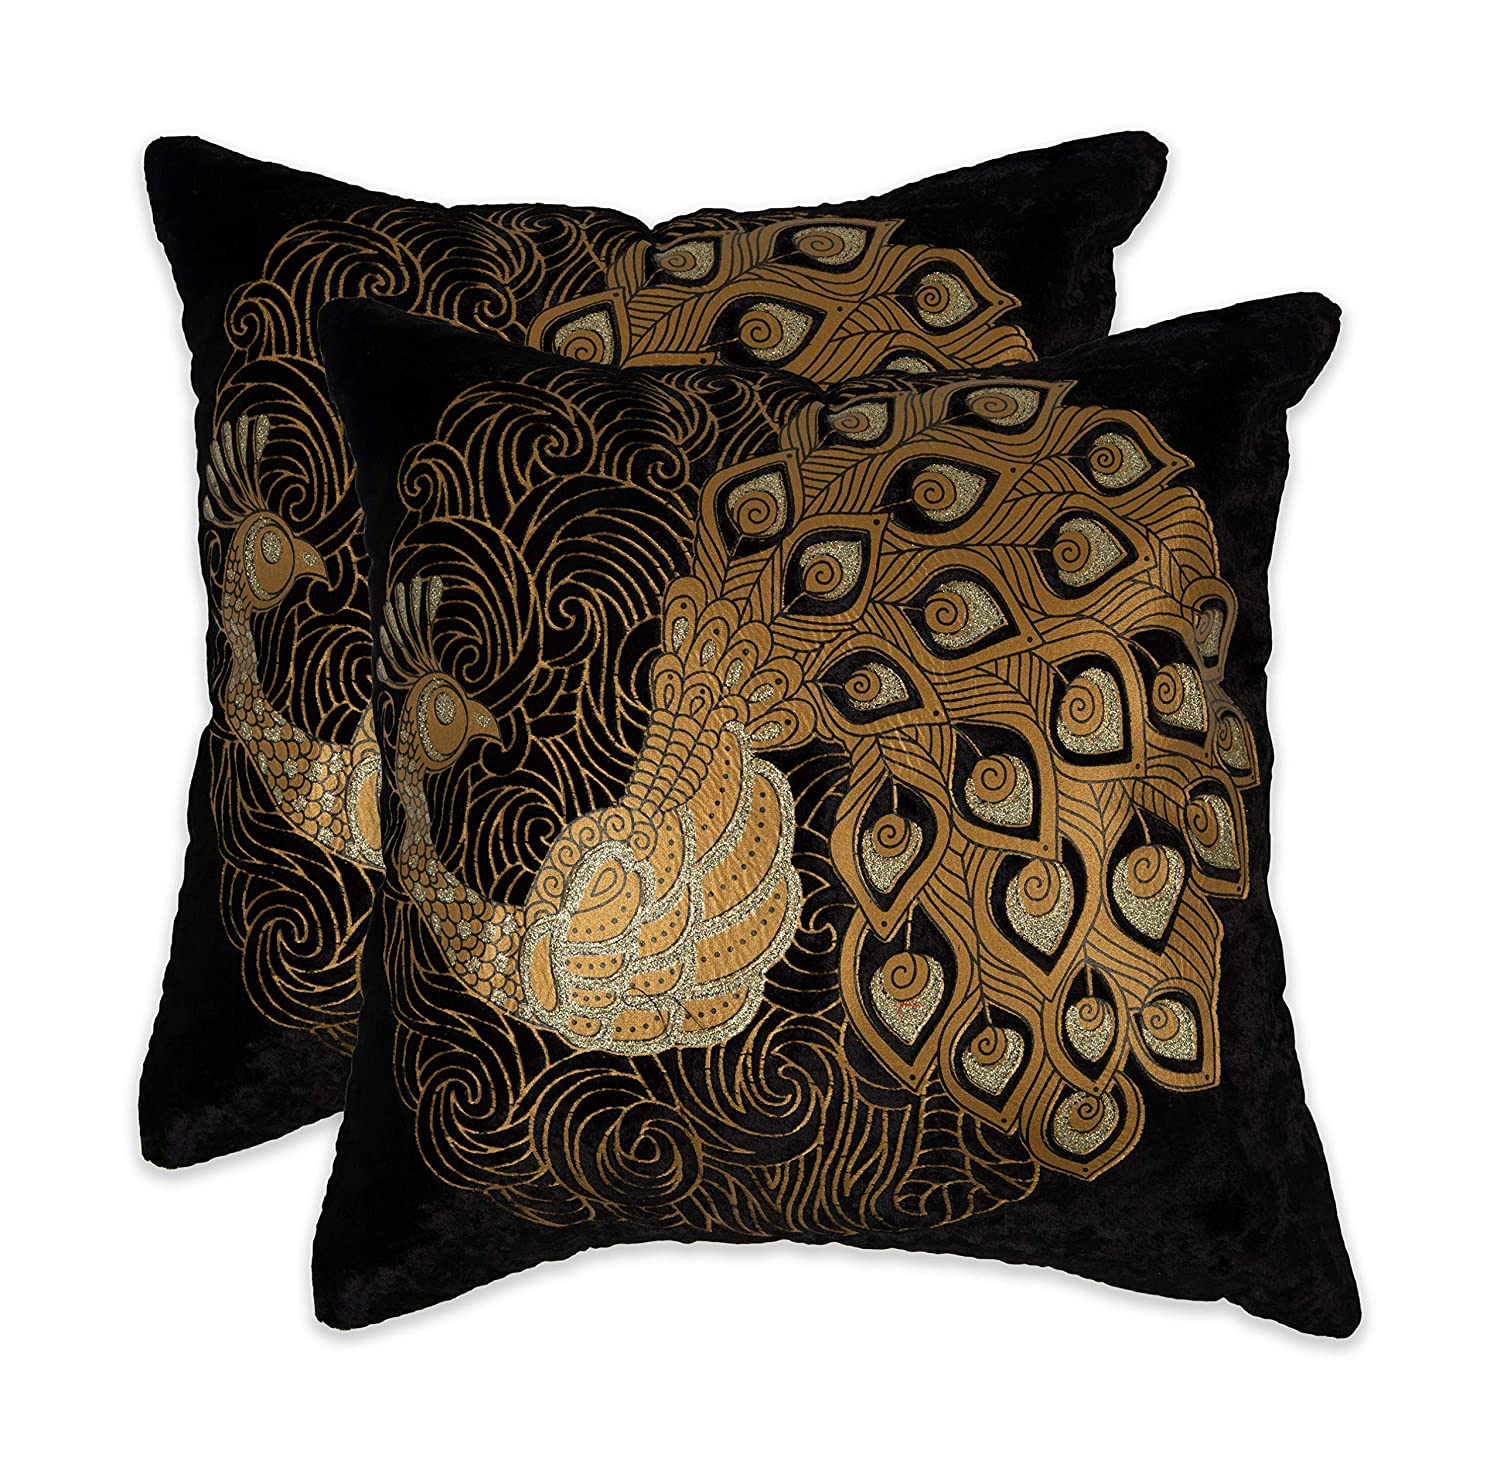 """Buy NEHA HANDICRAFTS Silk & Velvet 2 Piece Decorative Beautiful Peacock  with Embossed Golden Zari Sofa Cushion Covers - 16"""" x 16"""", Black Online at  Low Prices in India - Amazon.in"""